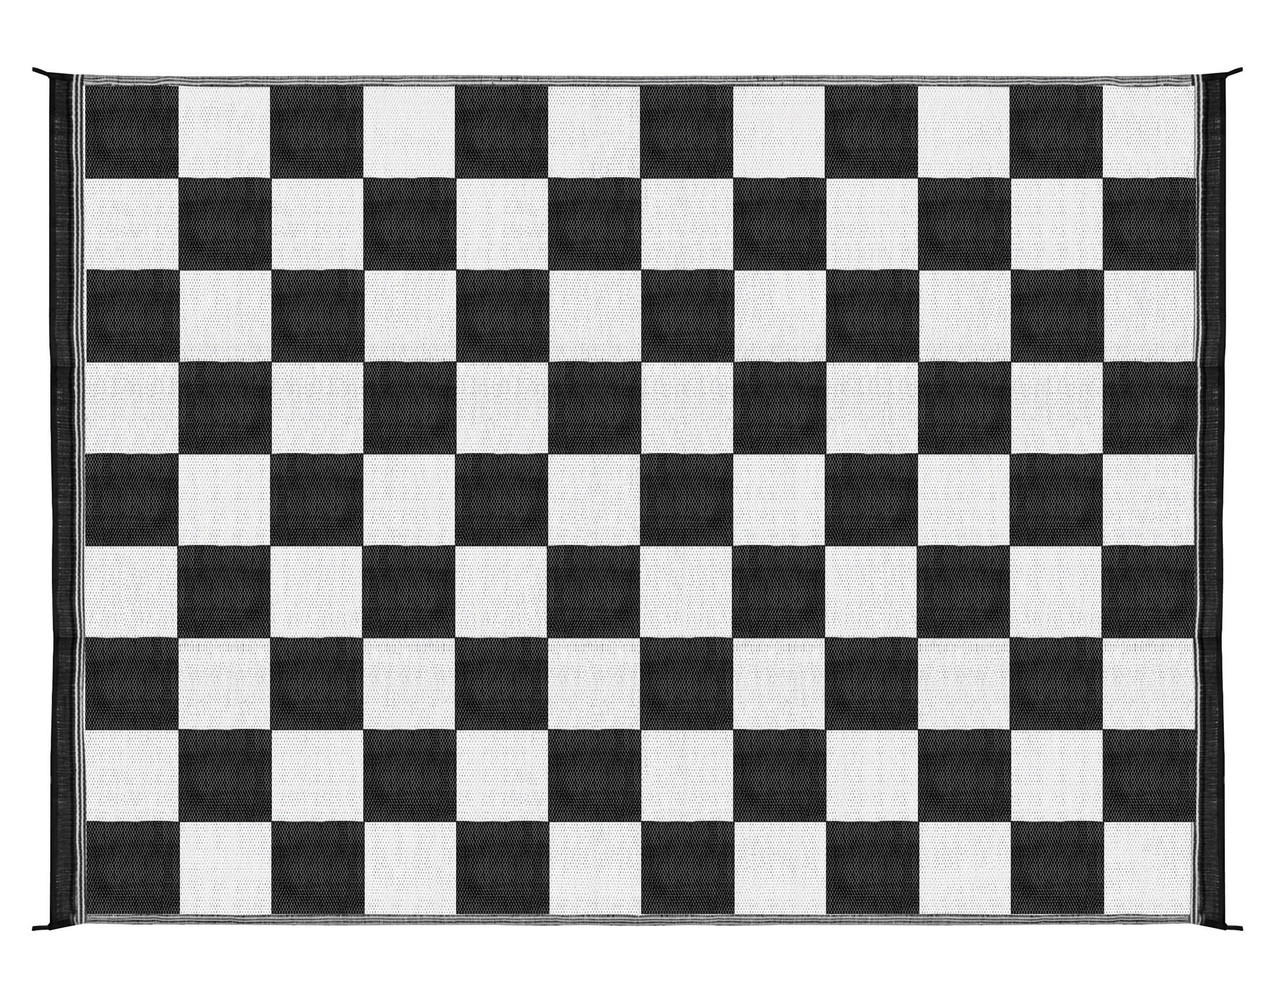 Camco Outdoor Mat 9 X 12 Black White Checkered Rvsupplies Com